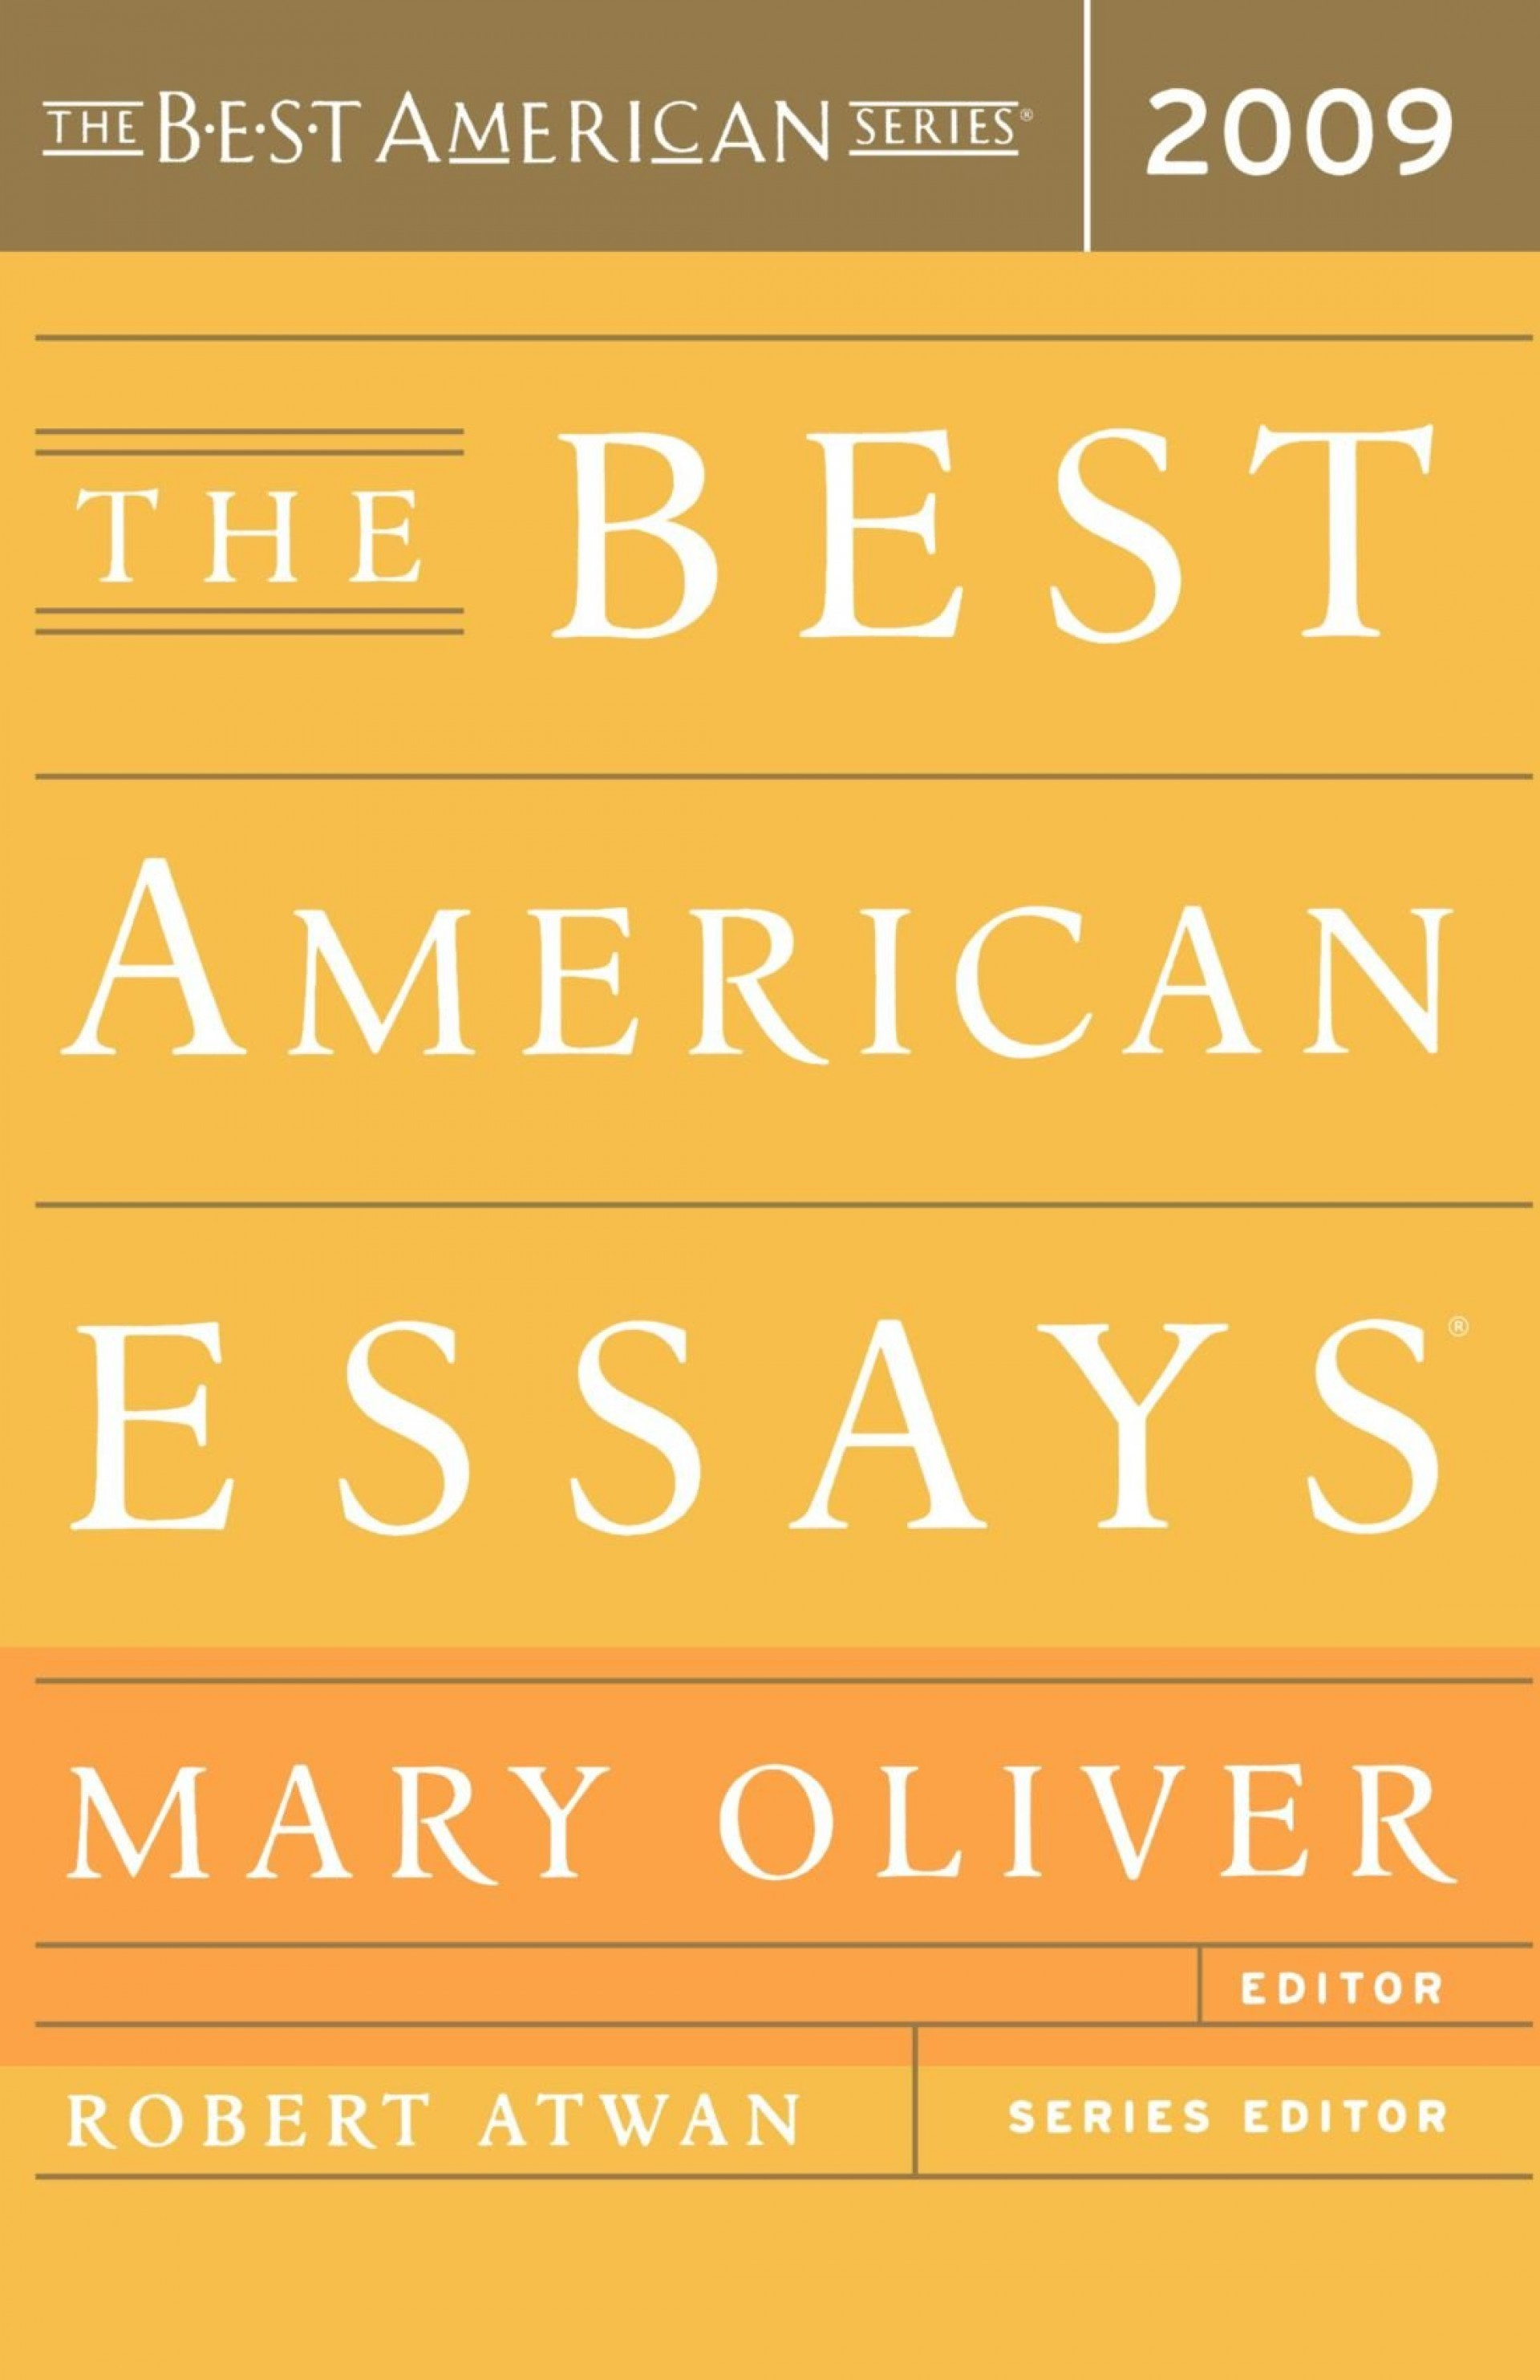 008 617qb5slhfl Essay Example The Best American Wonderful Essays 2013 Pdf Download Of Century Sparknotes 2017 1920